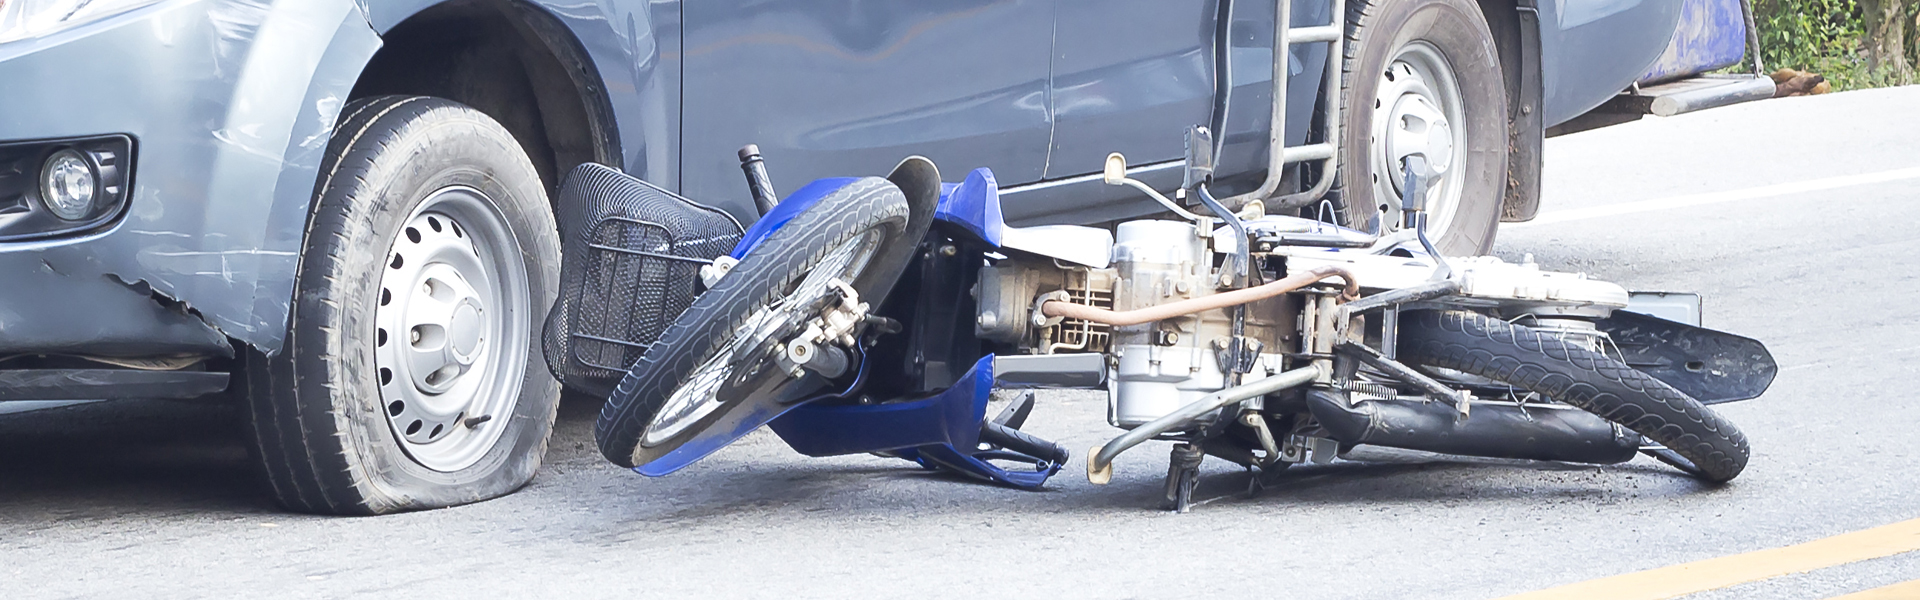 Motorcycle Accidents or Crashes in Houston, TX